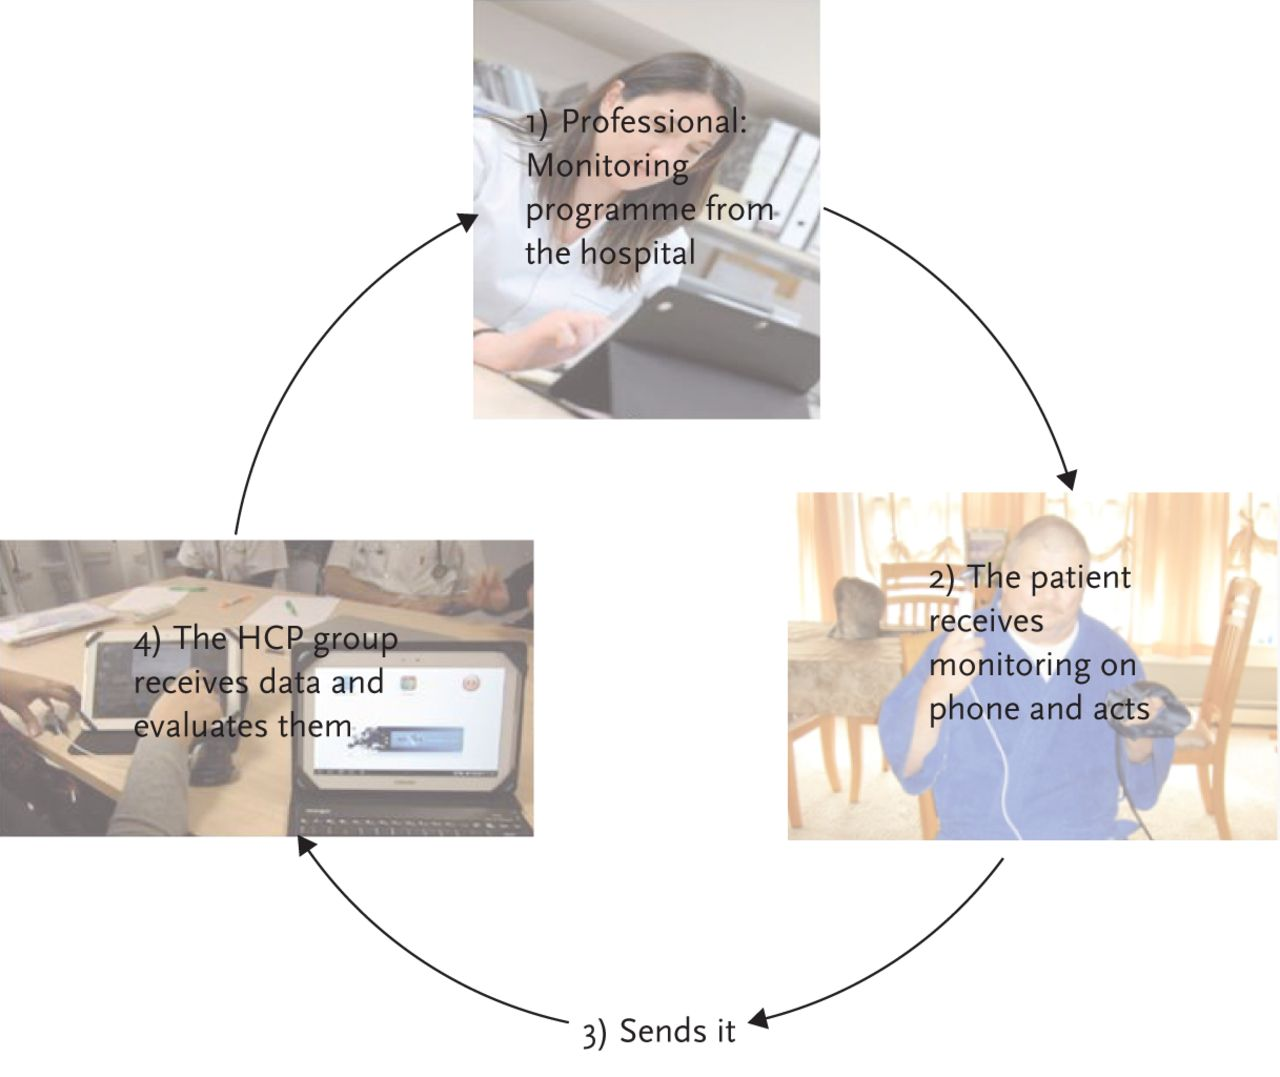 telehealth in nursing practice essay This chapter explores the usage of telehealth in nursing practice the authors examine the role of telehealth along with potential issues that may arise in its usage brewer e p (2011.